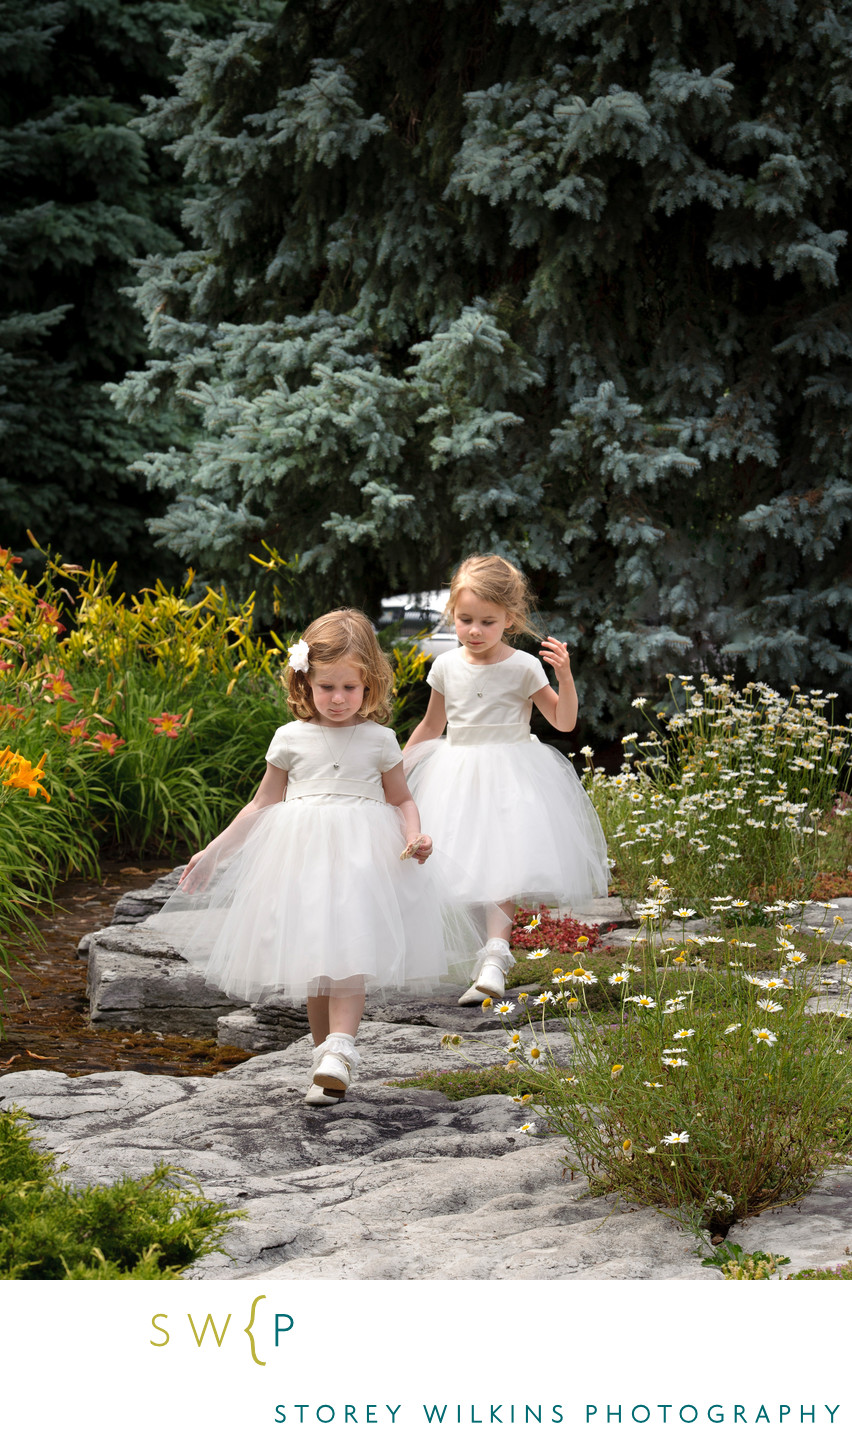 Toronto Wedding Photography with Adorable Flower Girls